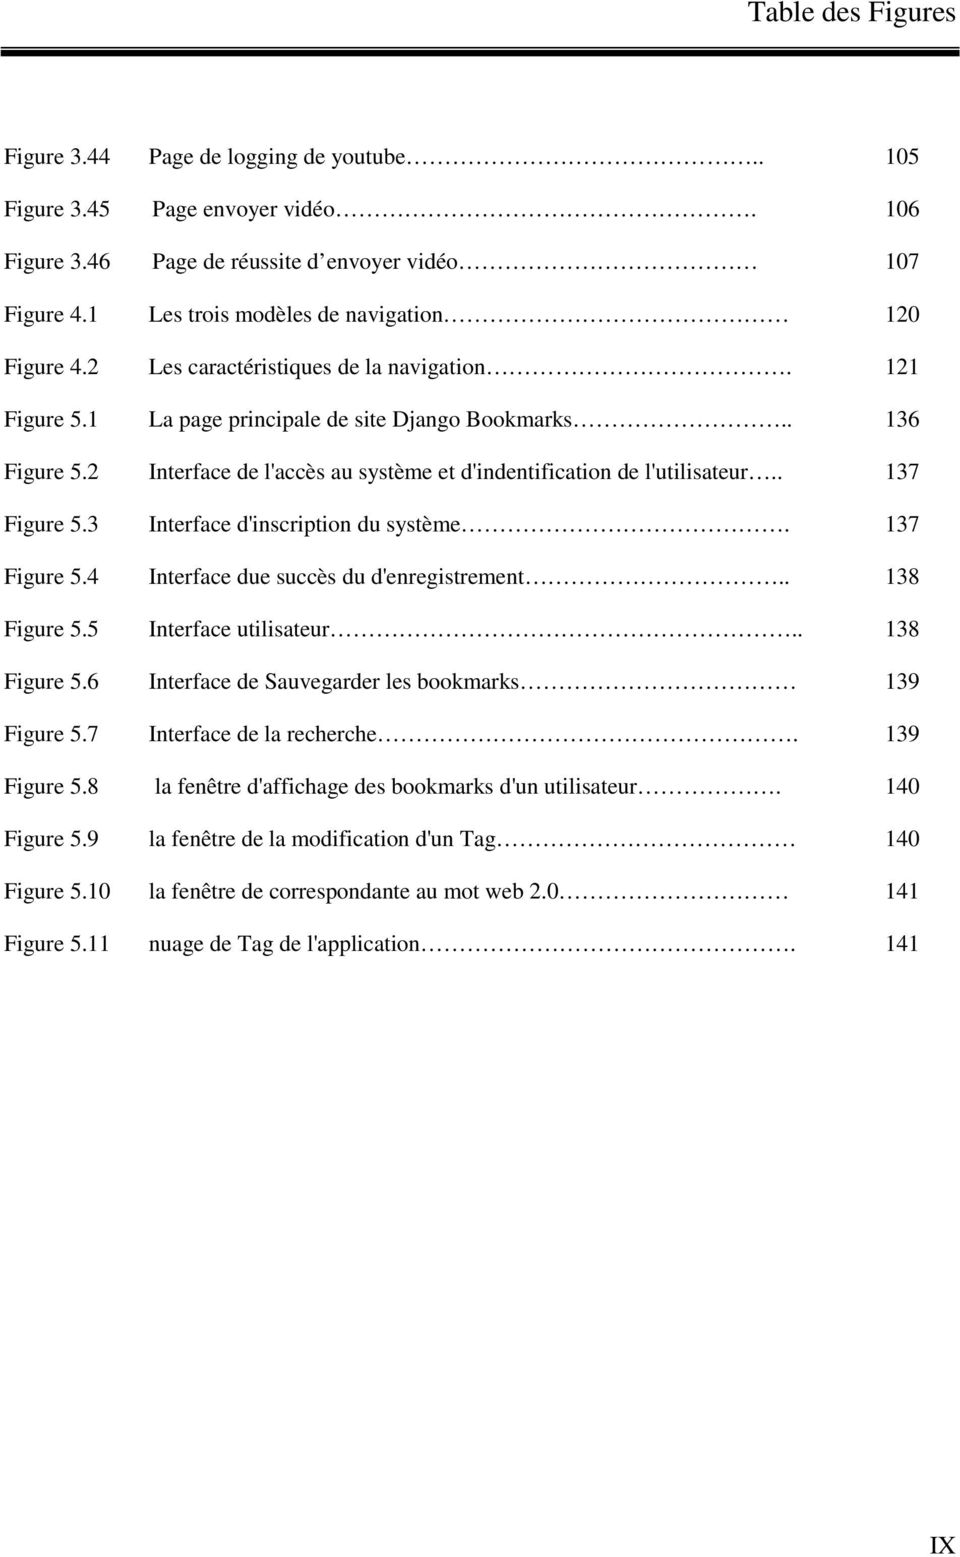 2 Interface de l'accès au système et d'indentification de l'utilisateur.. 137 Figure 5.3 Interface d'inscription du système. 137 Figure 5.4 Interface due succès du d'enregistrement.. 138 Figure 5.